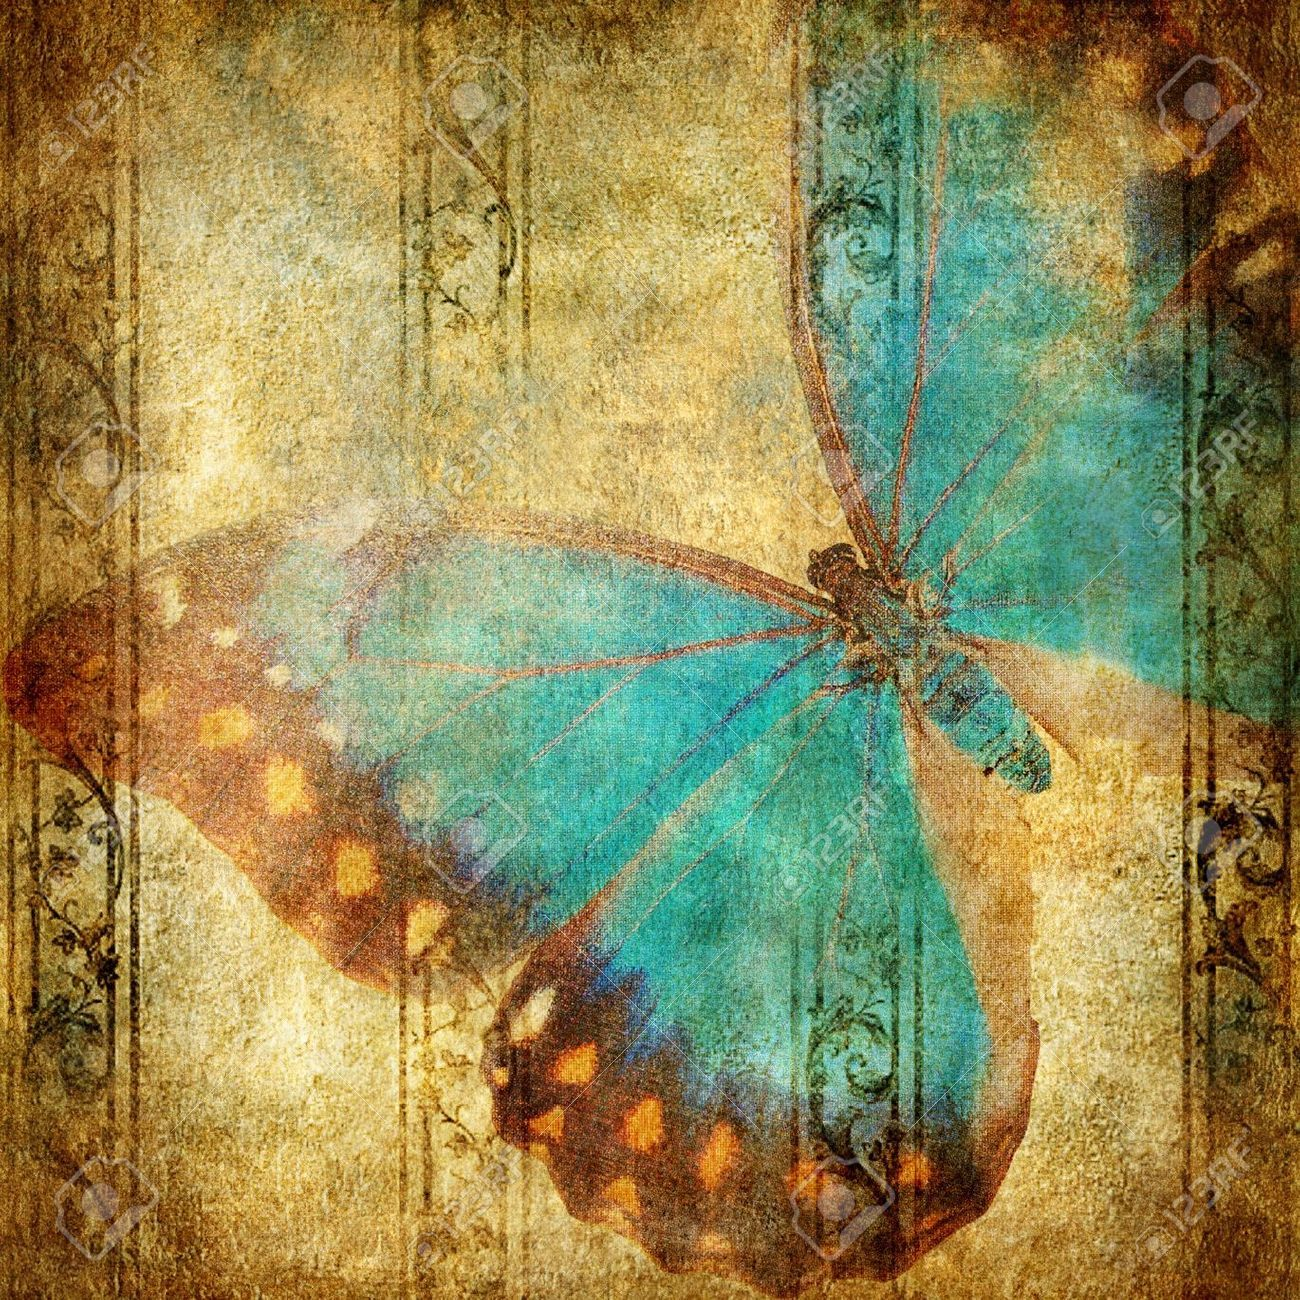 Vintage Background With Butterfly Stock Photo, Picture And Royalty Free Image. Image 5190755.